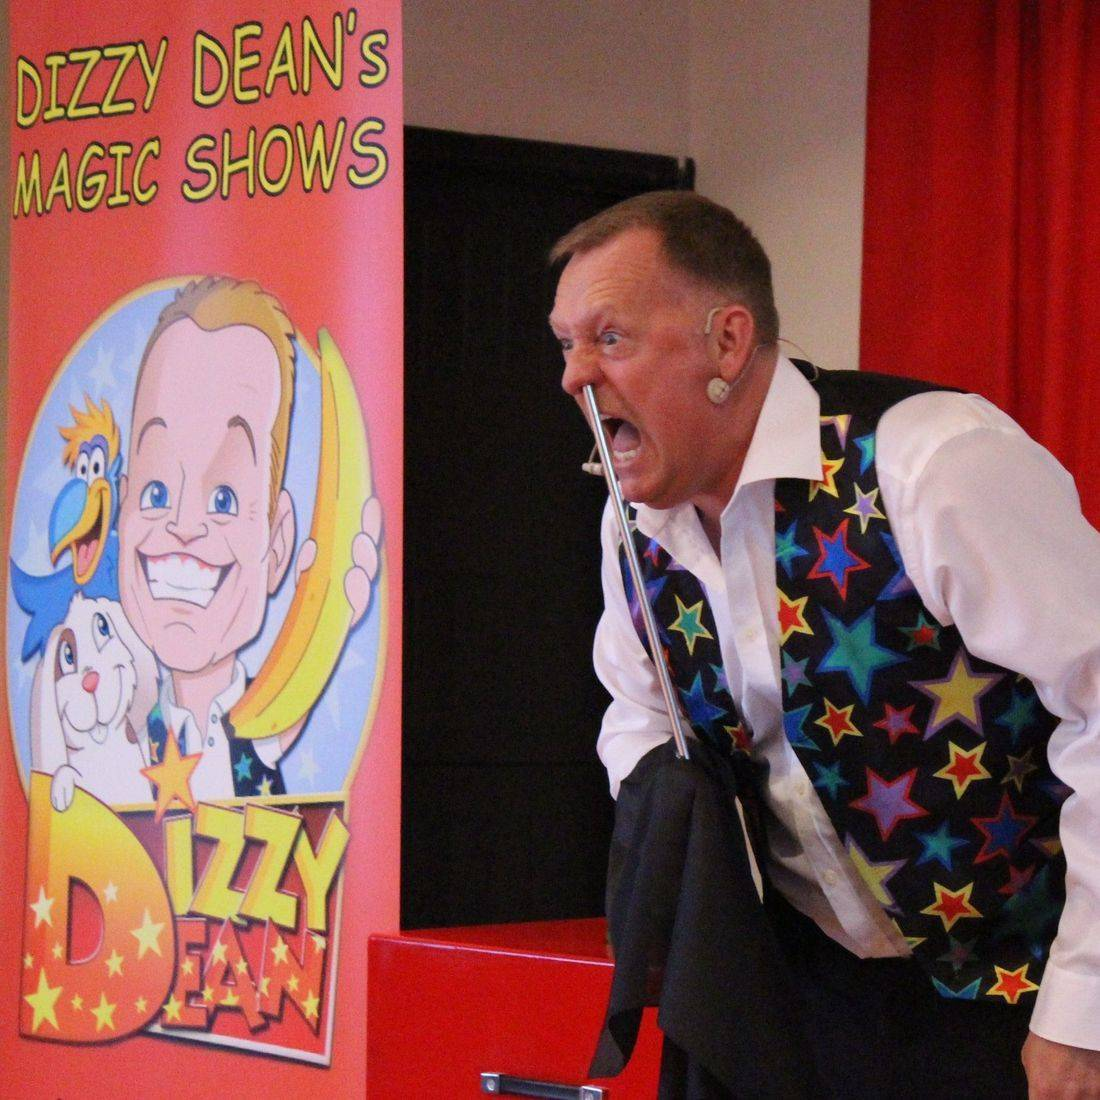 Comedy Magic shows for children with Dizzy Deans Magic